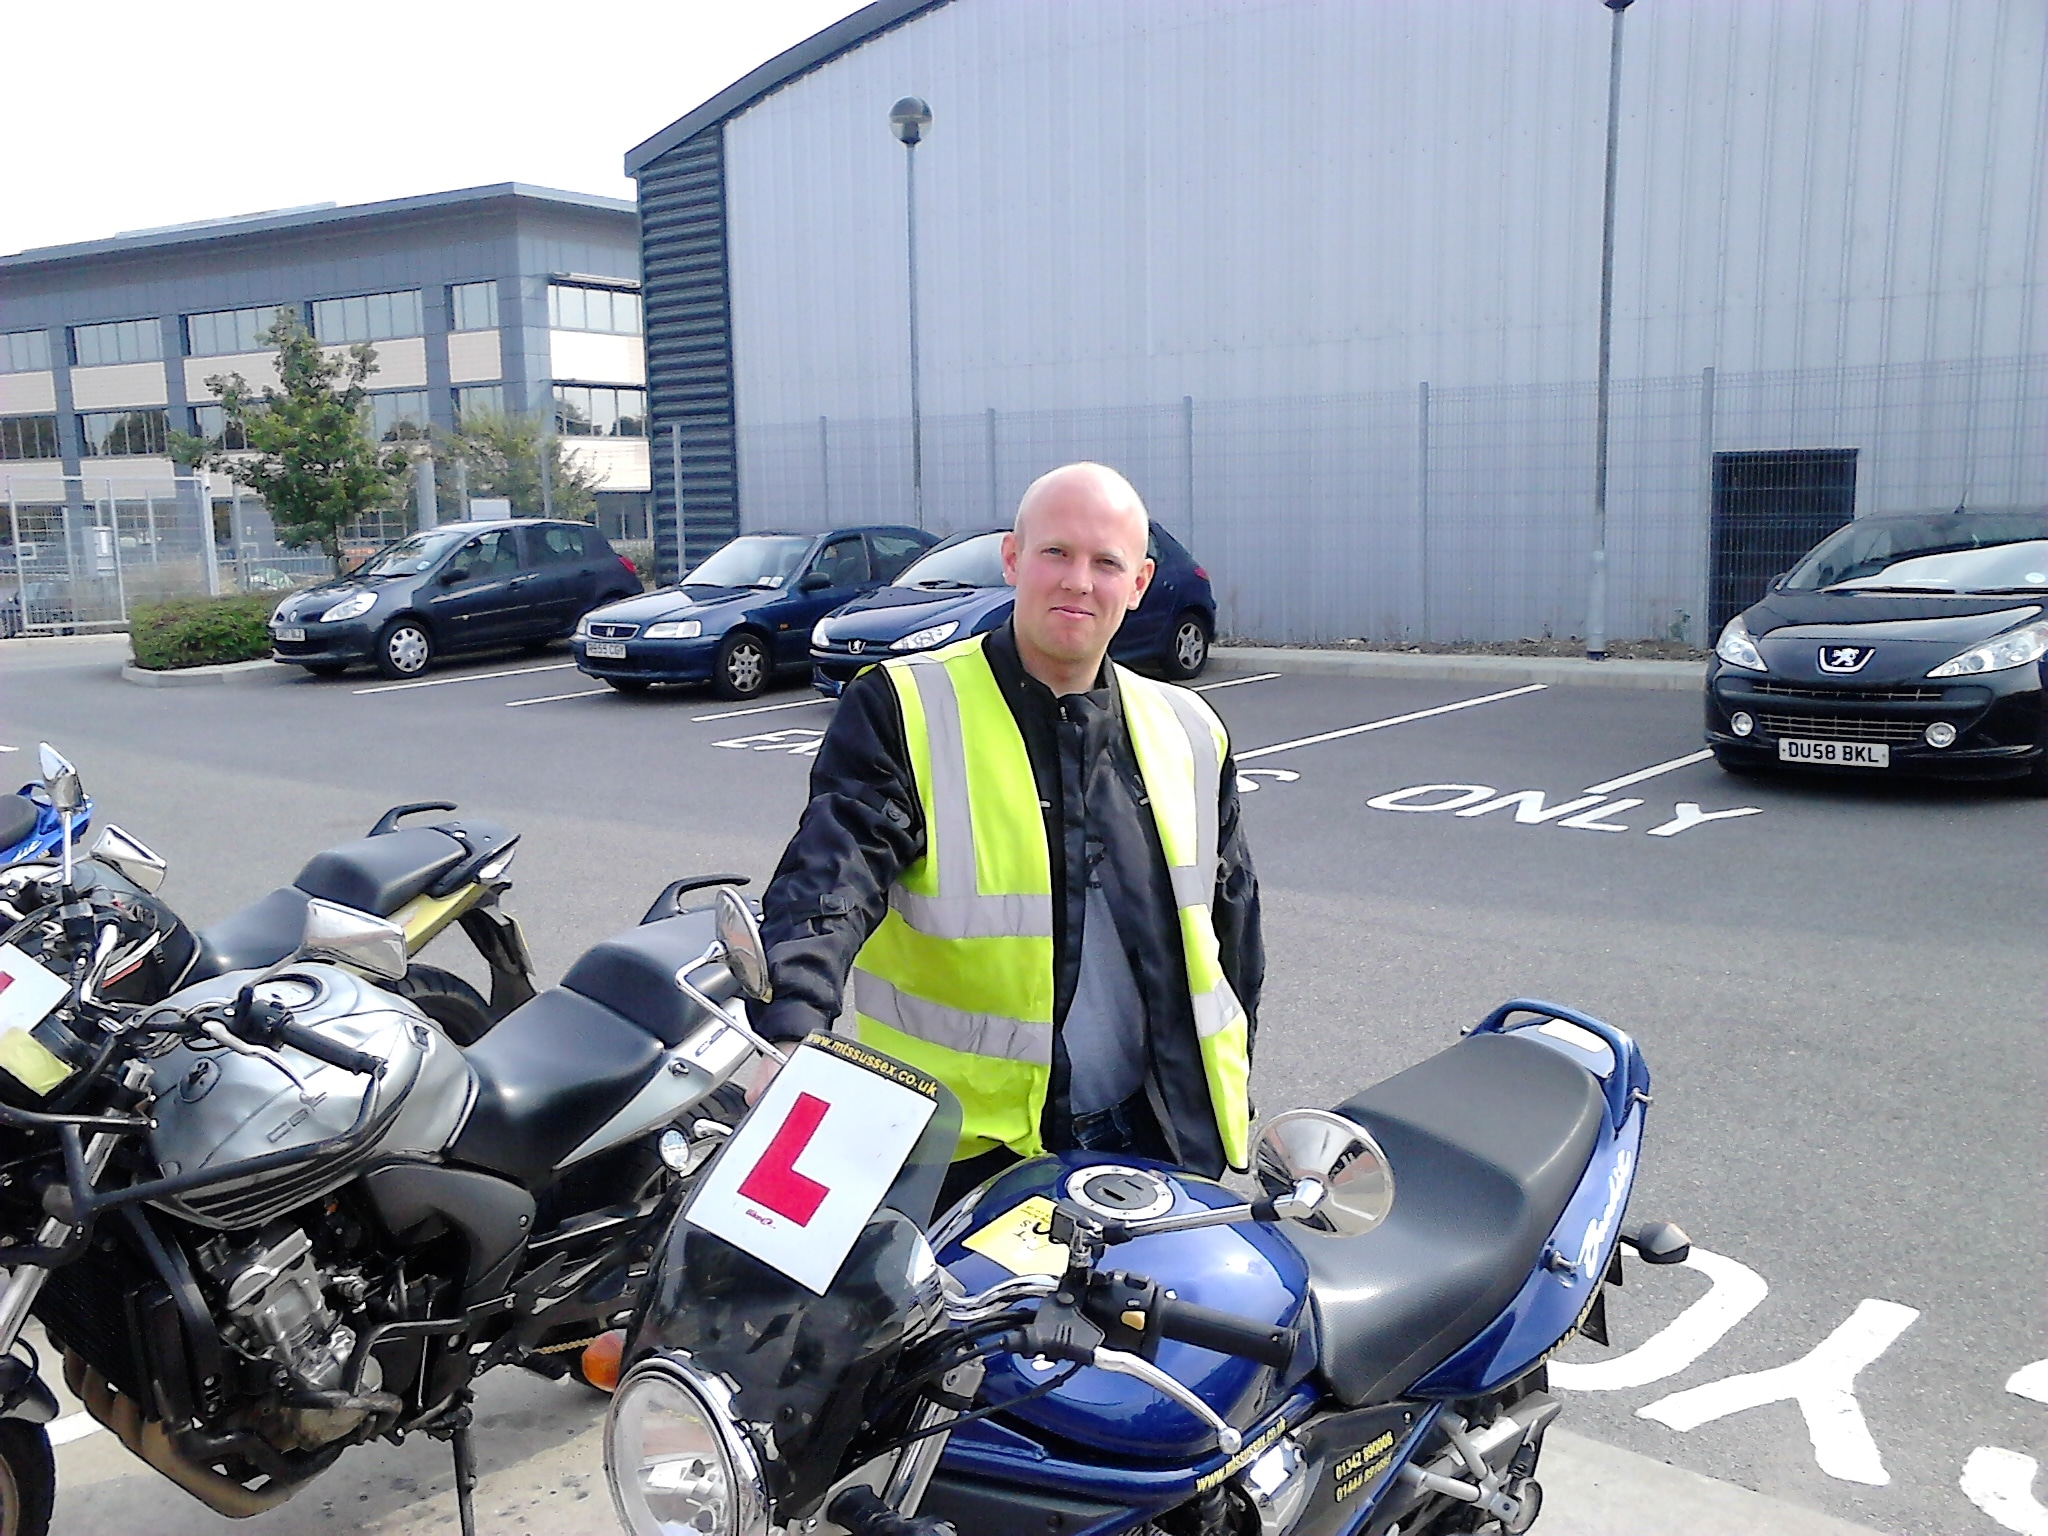 David Barnett looking pleased as punch at Burgess Hill test centre!